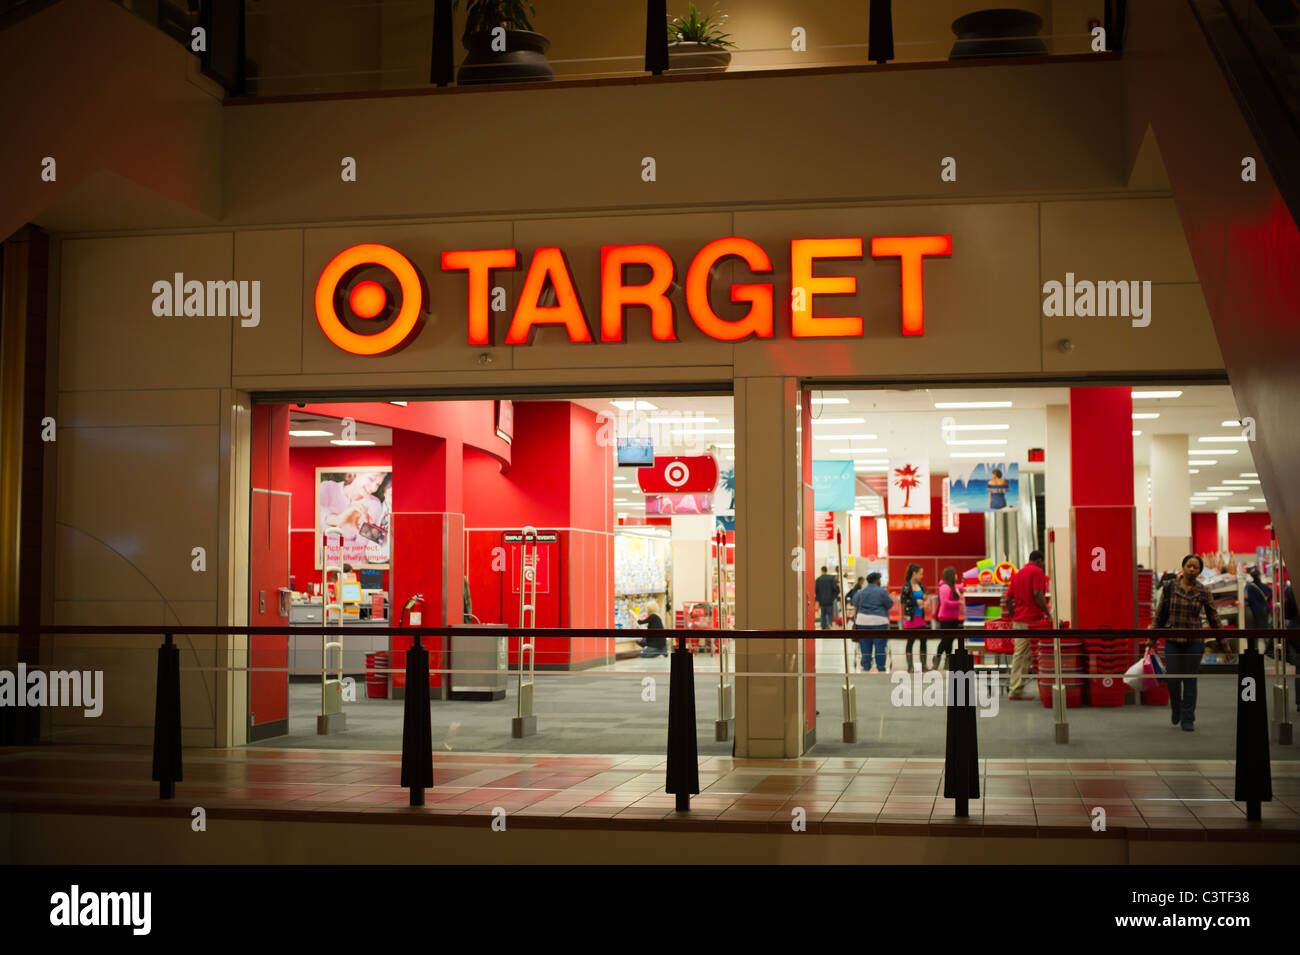 Entrance Target Department Store In Stock Photos & Entrance Target ...